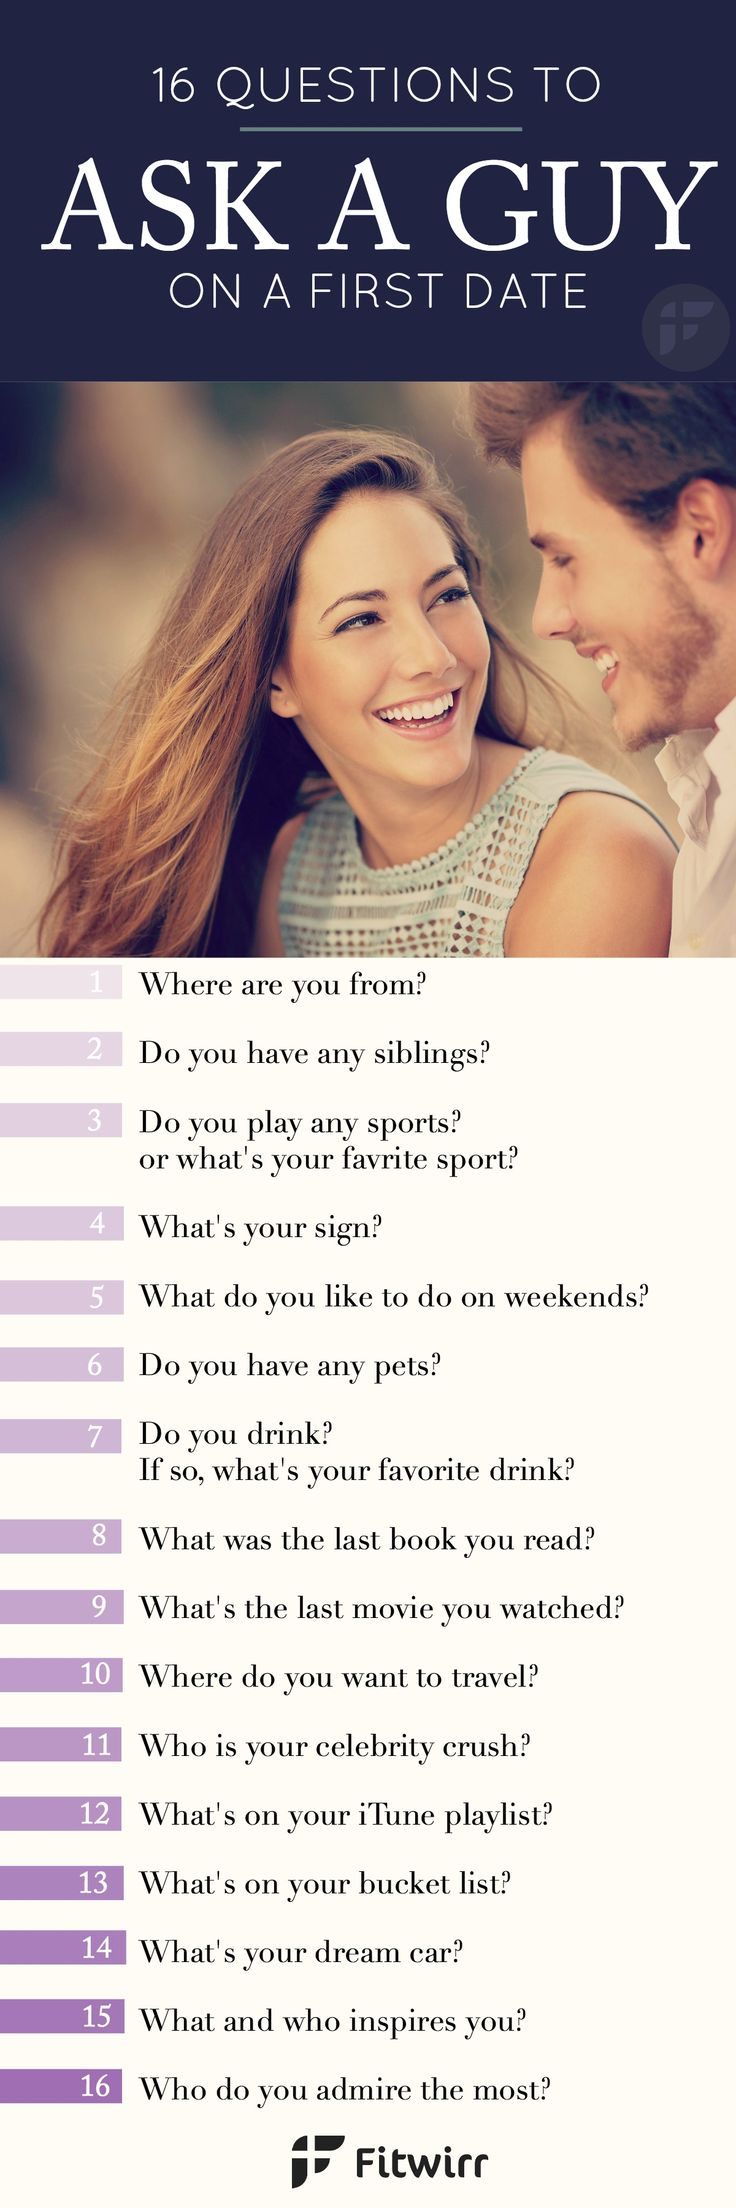 best date advice questions to ask a guy on first